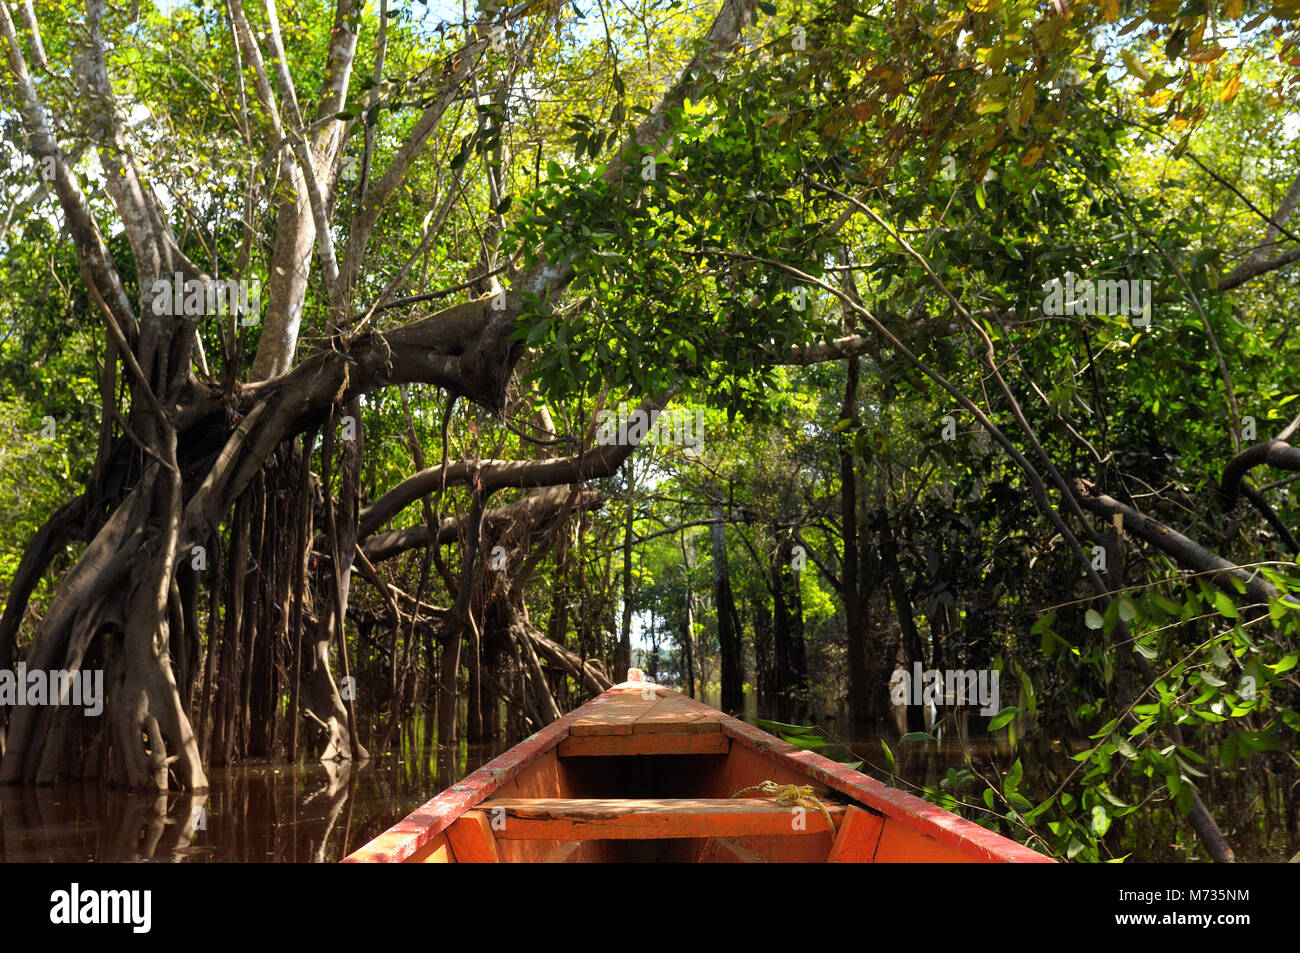 The Amazonian jungle in South America explore on the boat - Stock Image